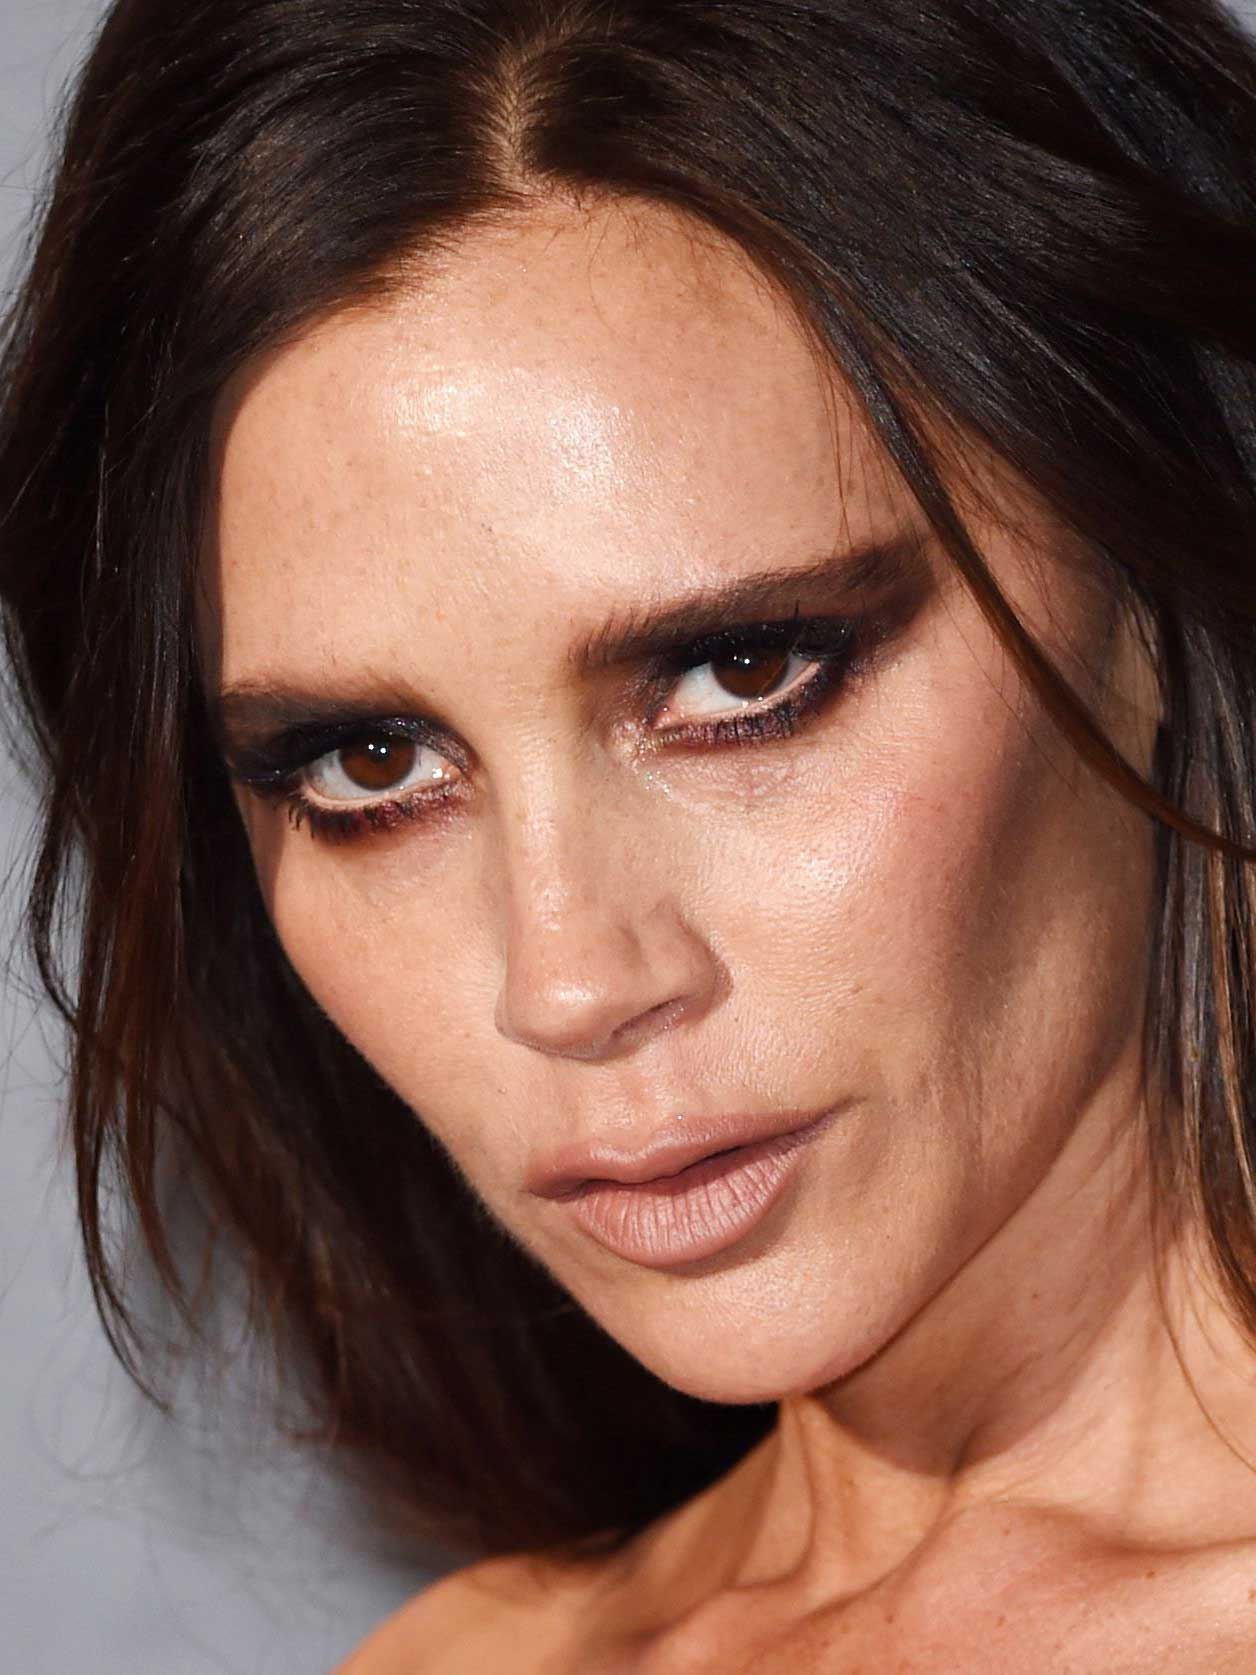 What Has Victoria Beckham Done To Her Face Has She Had